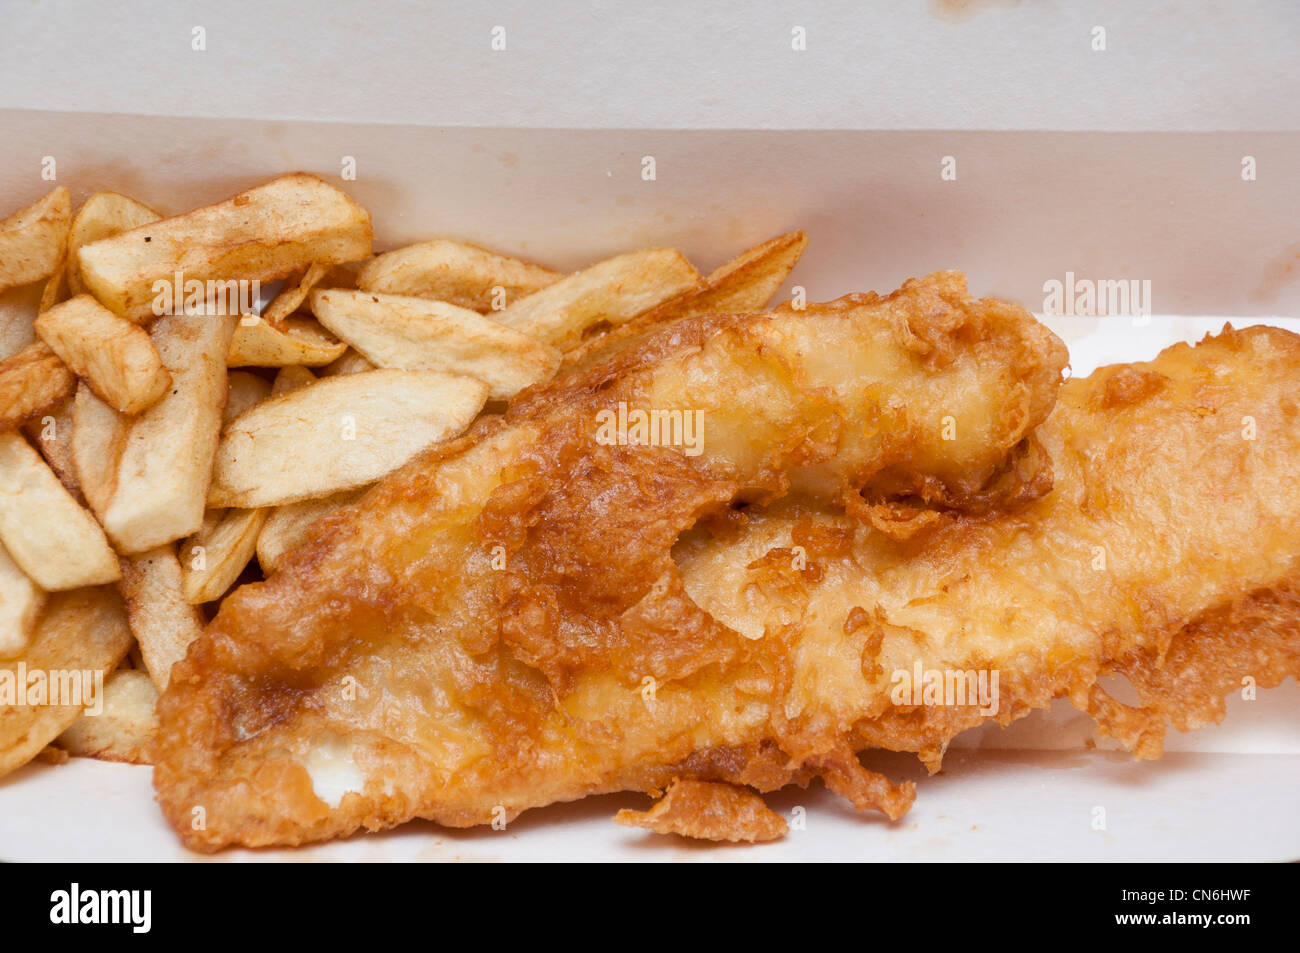 Fish and Chips British takeaway food. - Stock Image